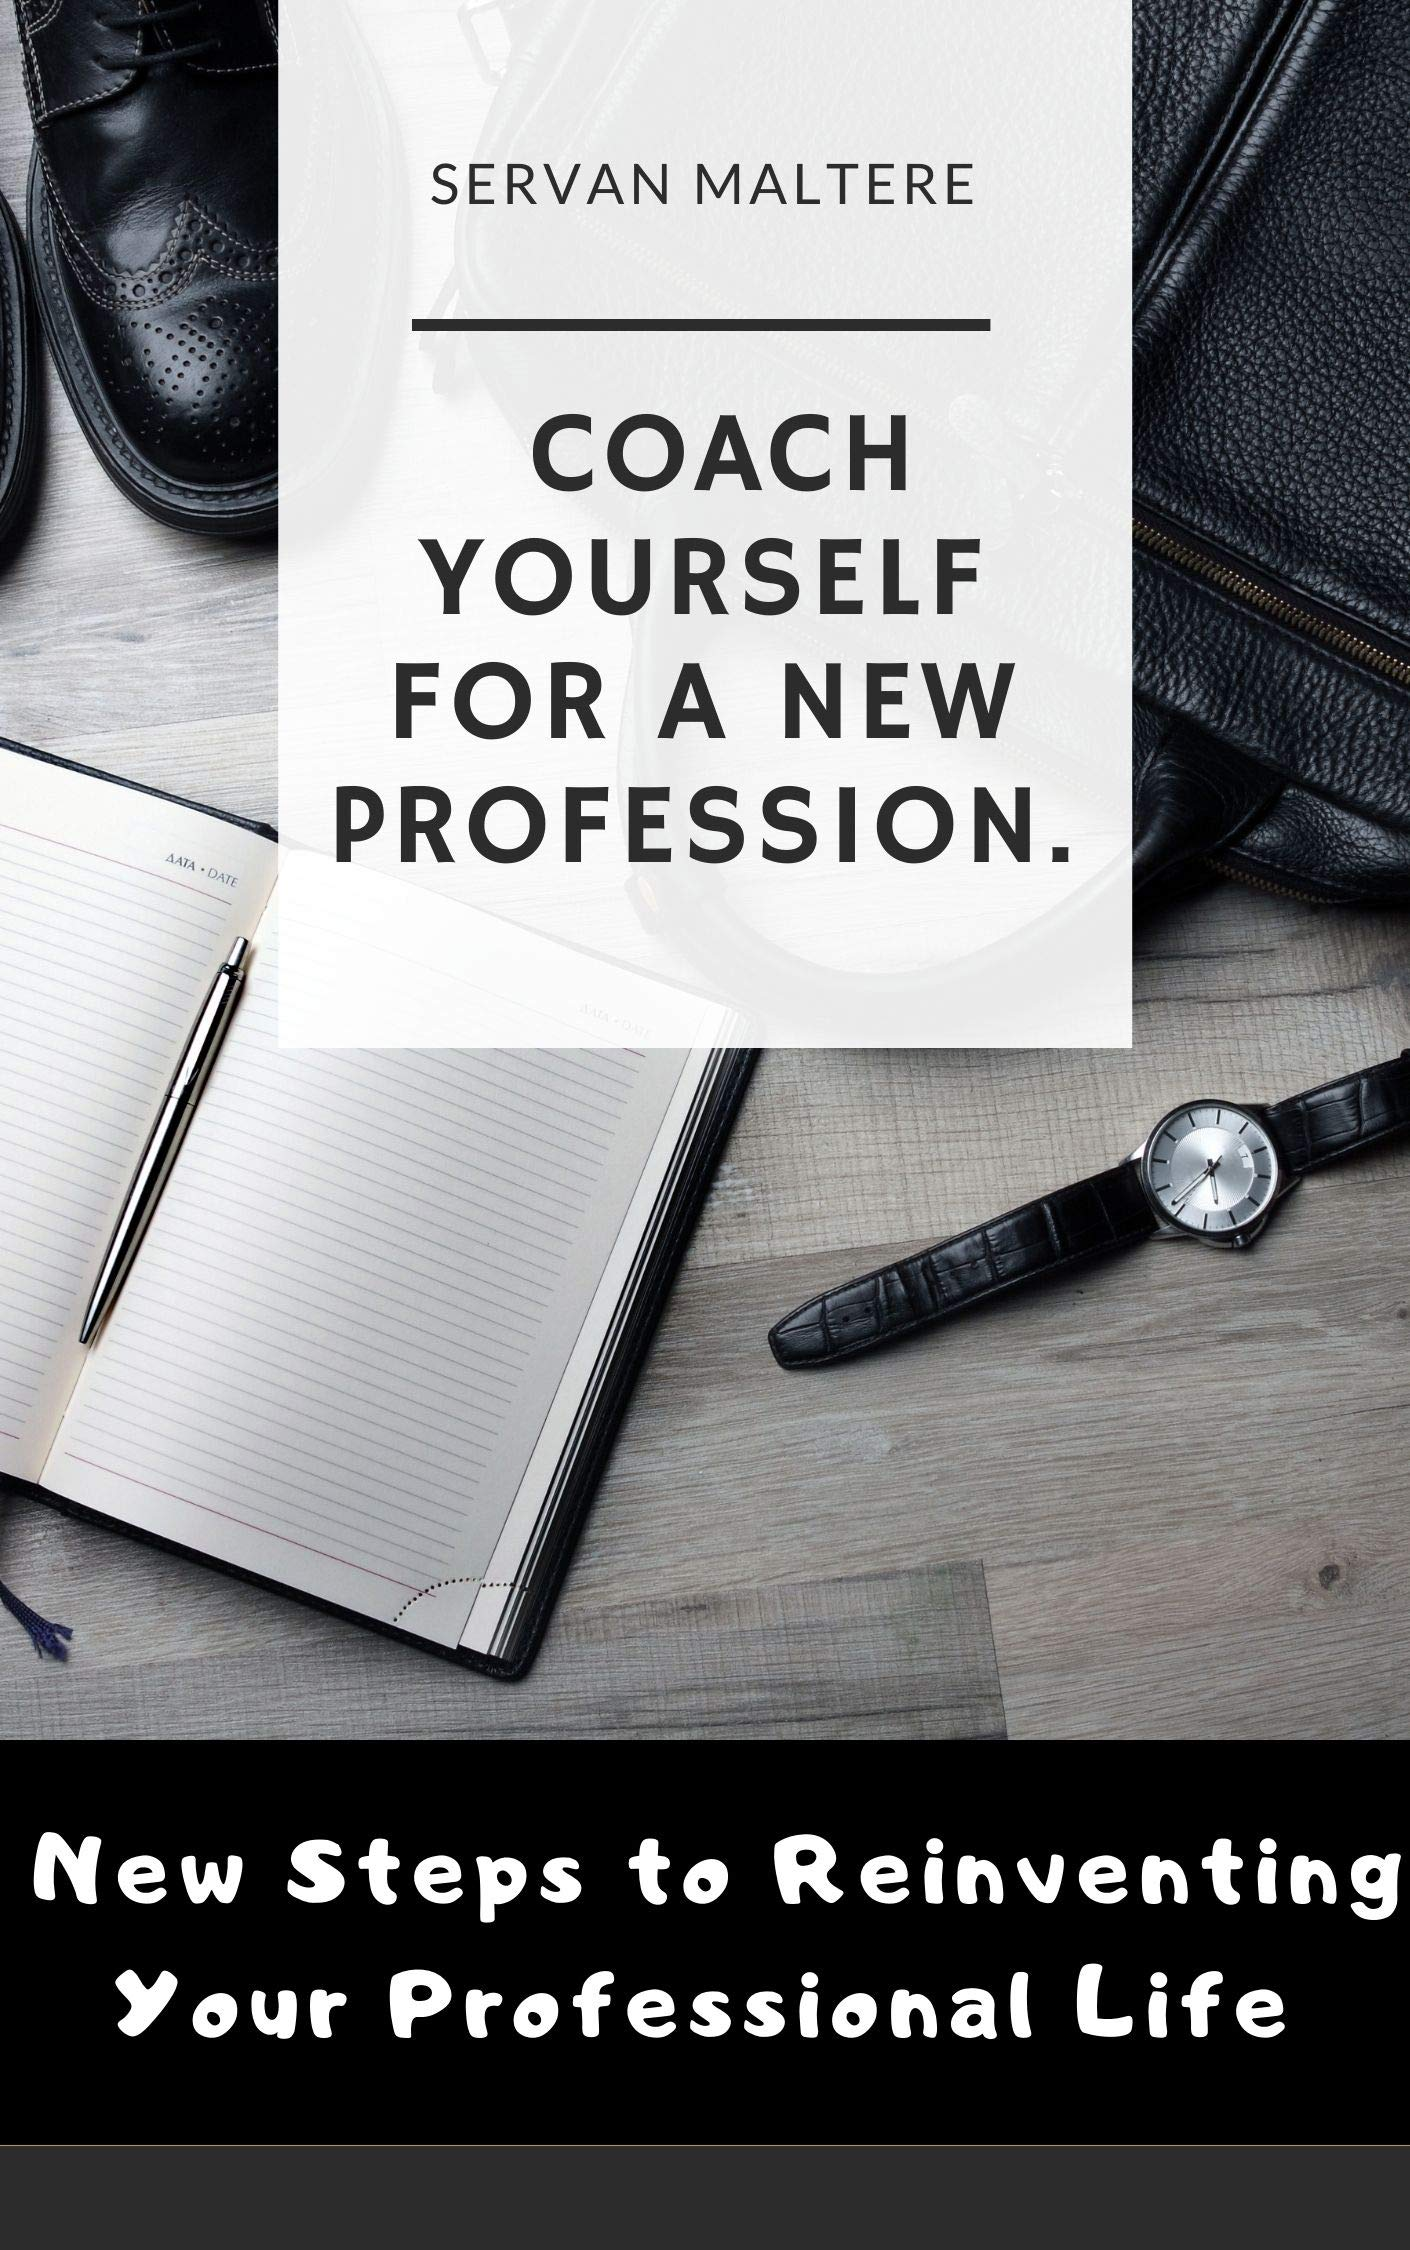 coach yourself for a new profession.: New Steps to Reinventing Your Professional Life